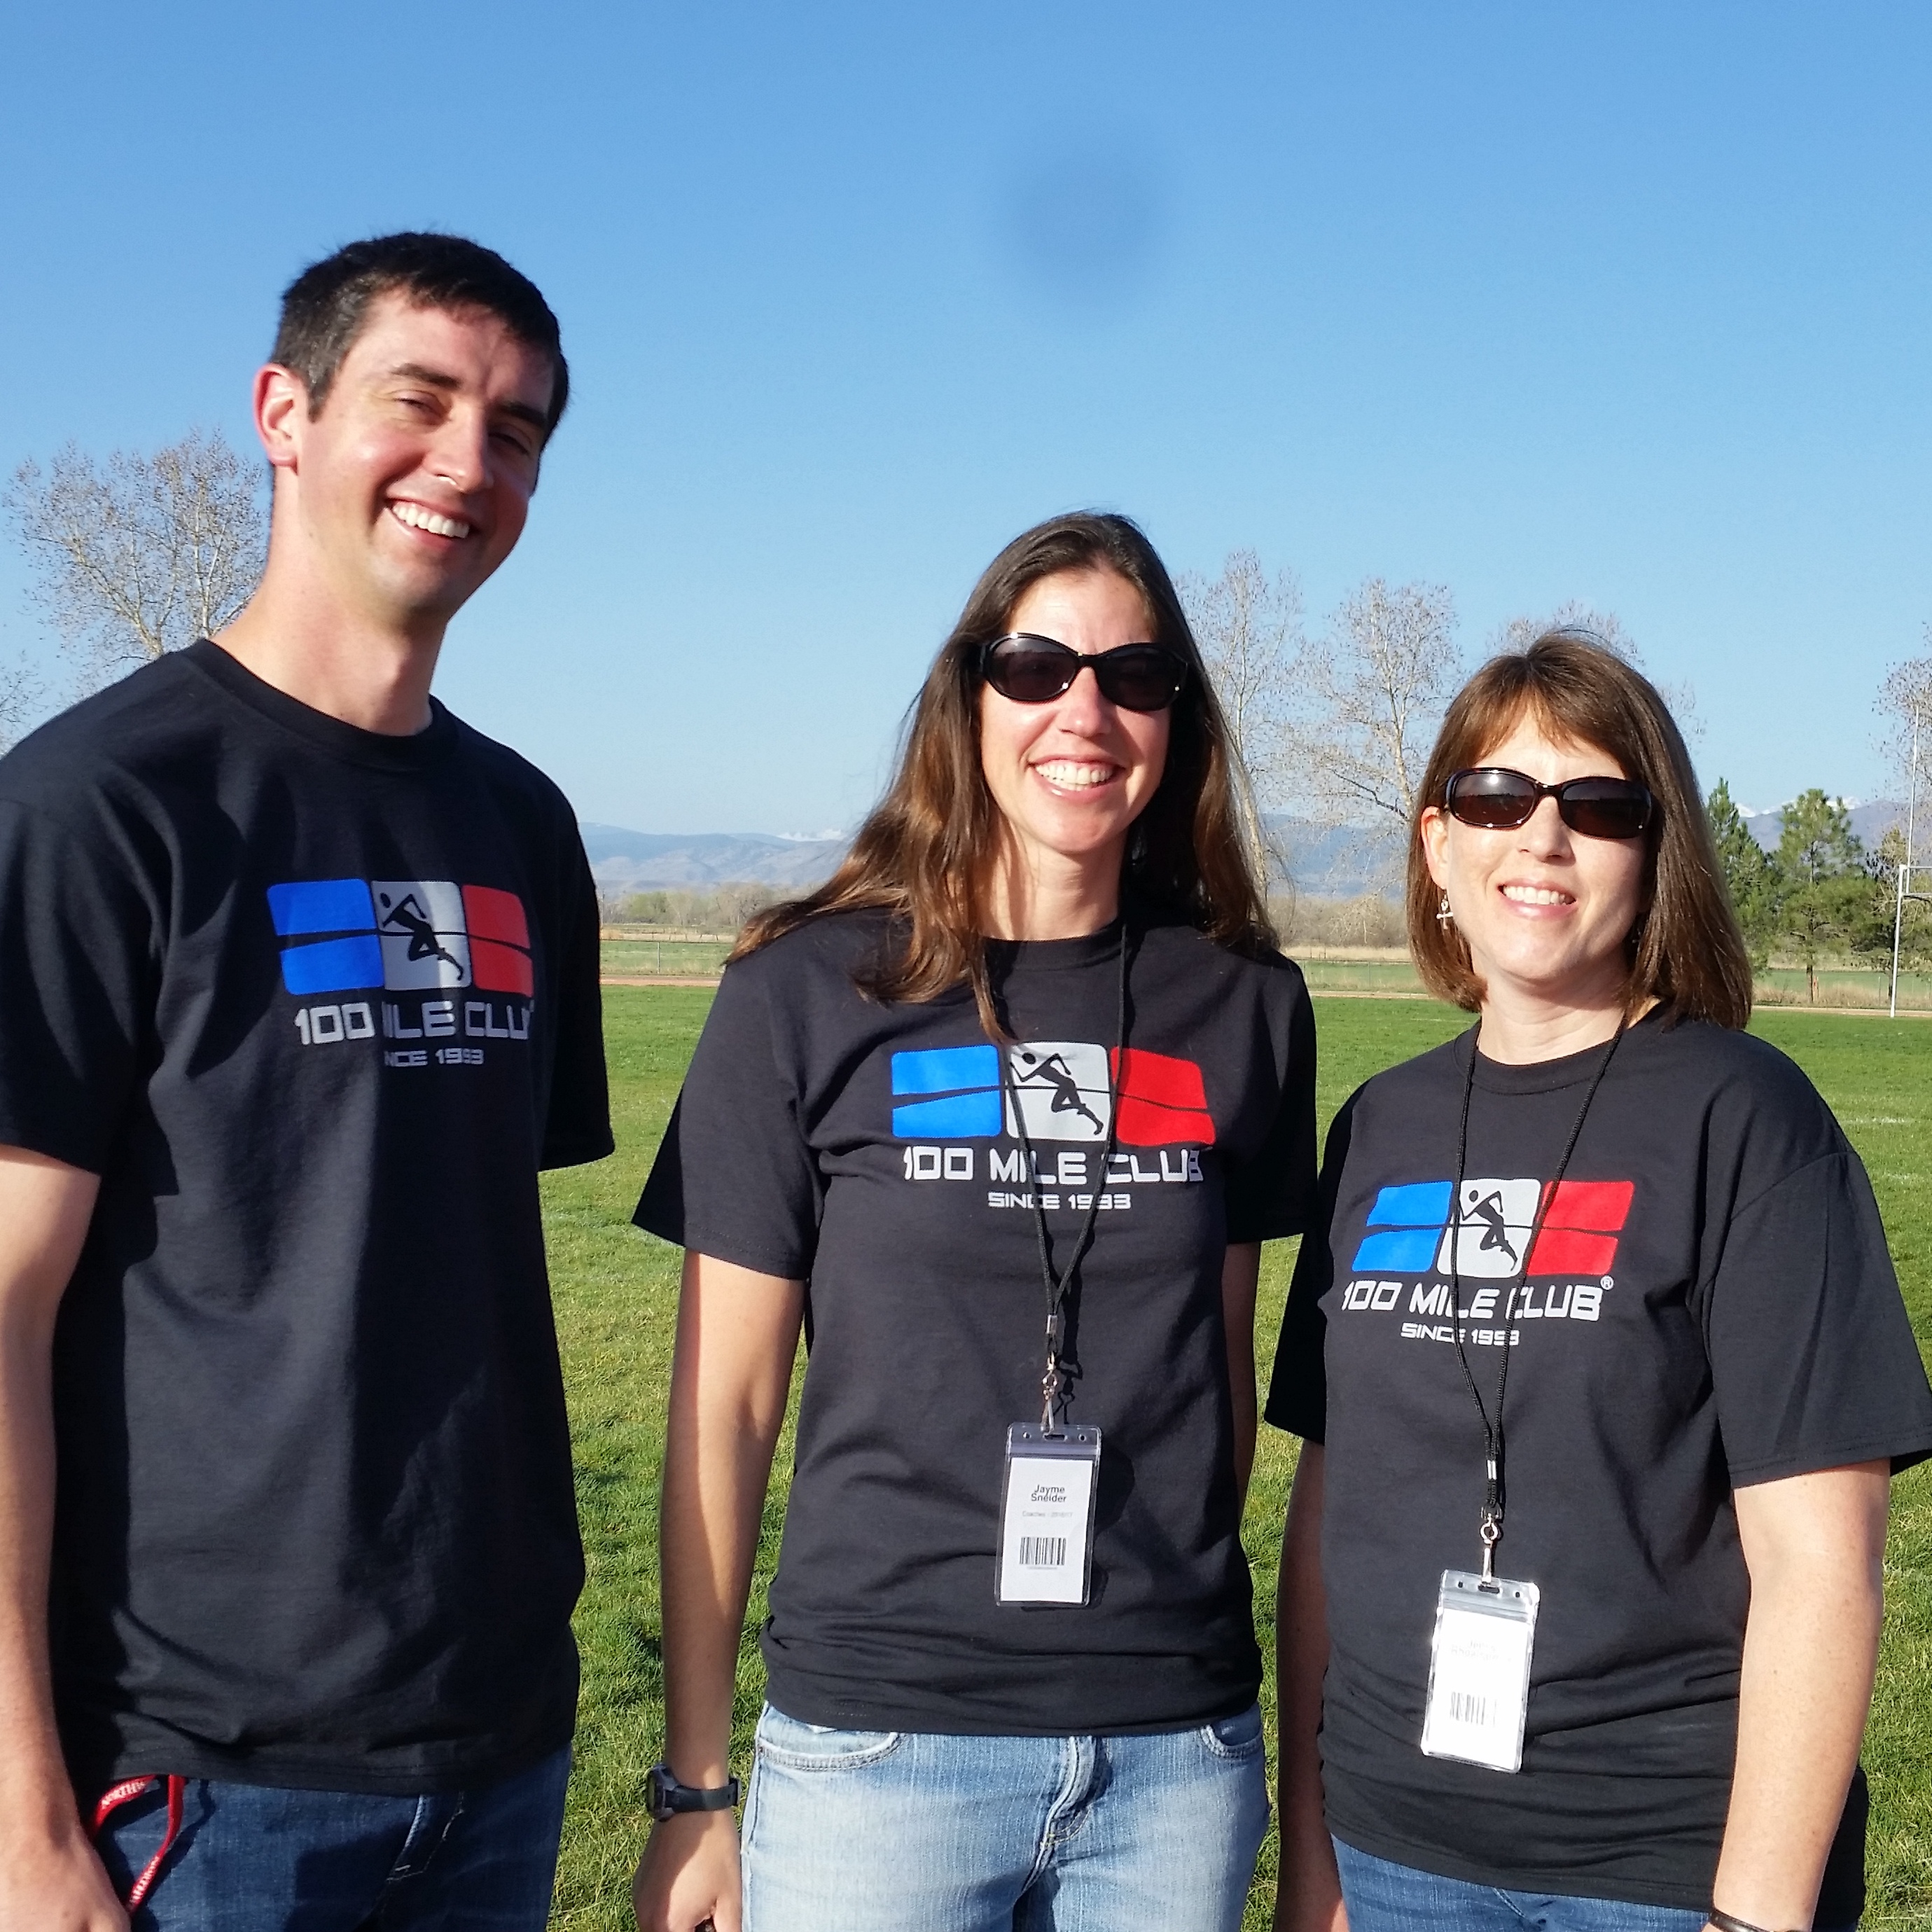 St. Vrain Valley School District: Creating healthy, happy, connected schools and communities